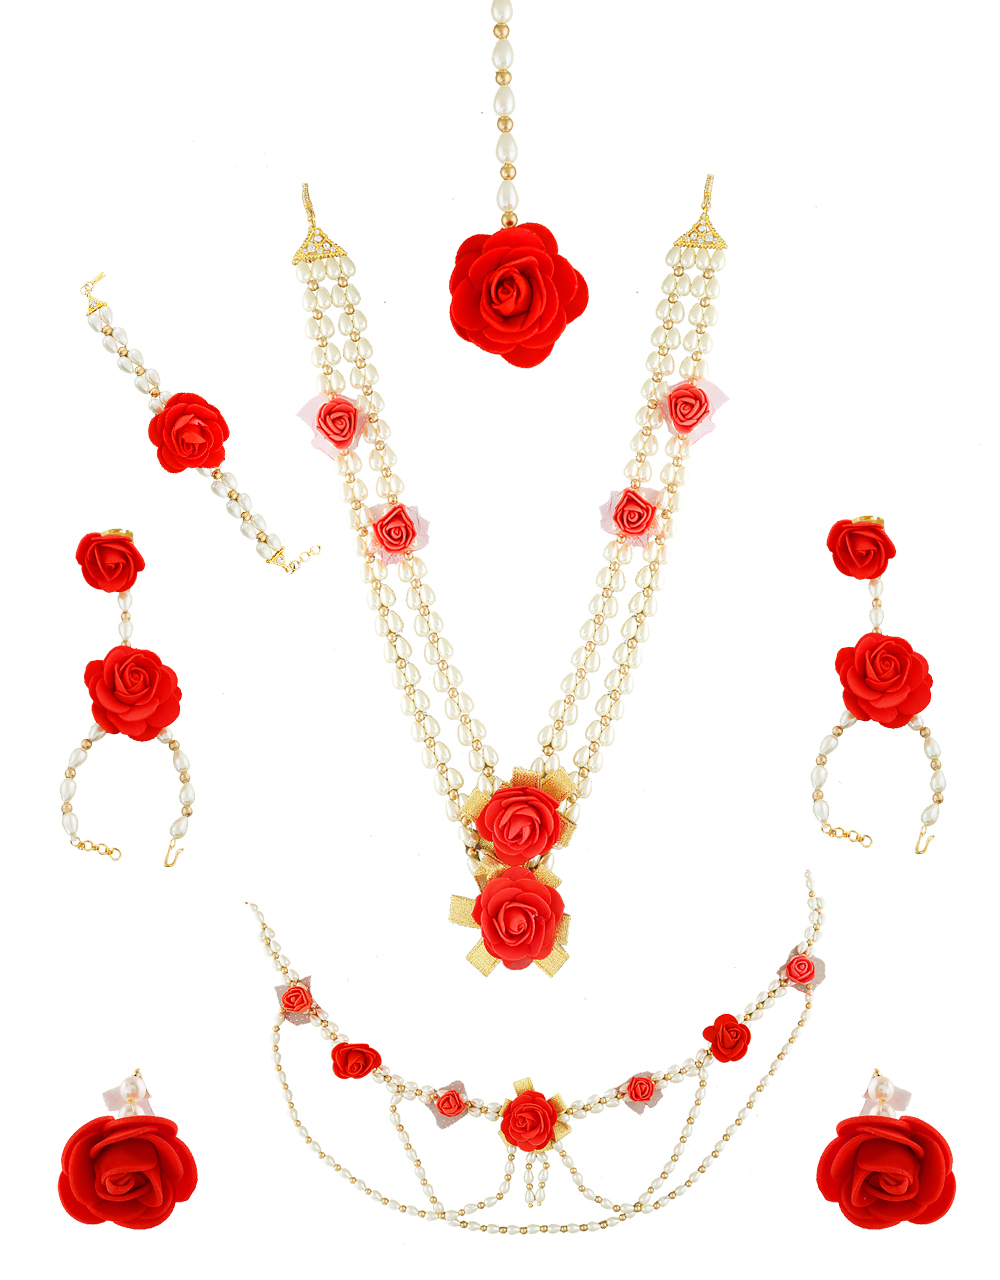 Red Flower Jewellery Styled With Pearls Artificial Flower  Necklace